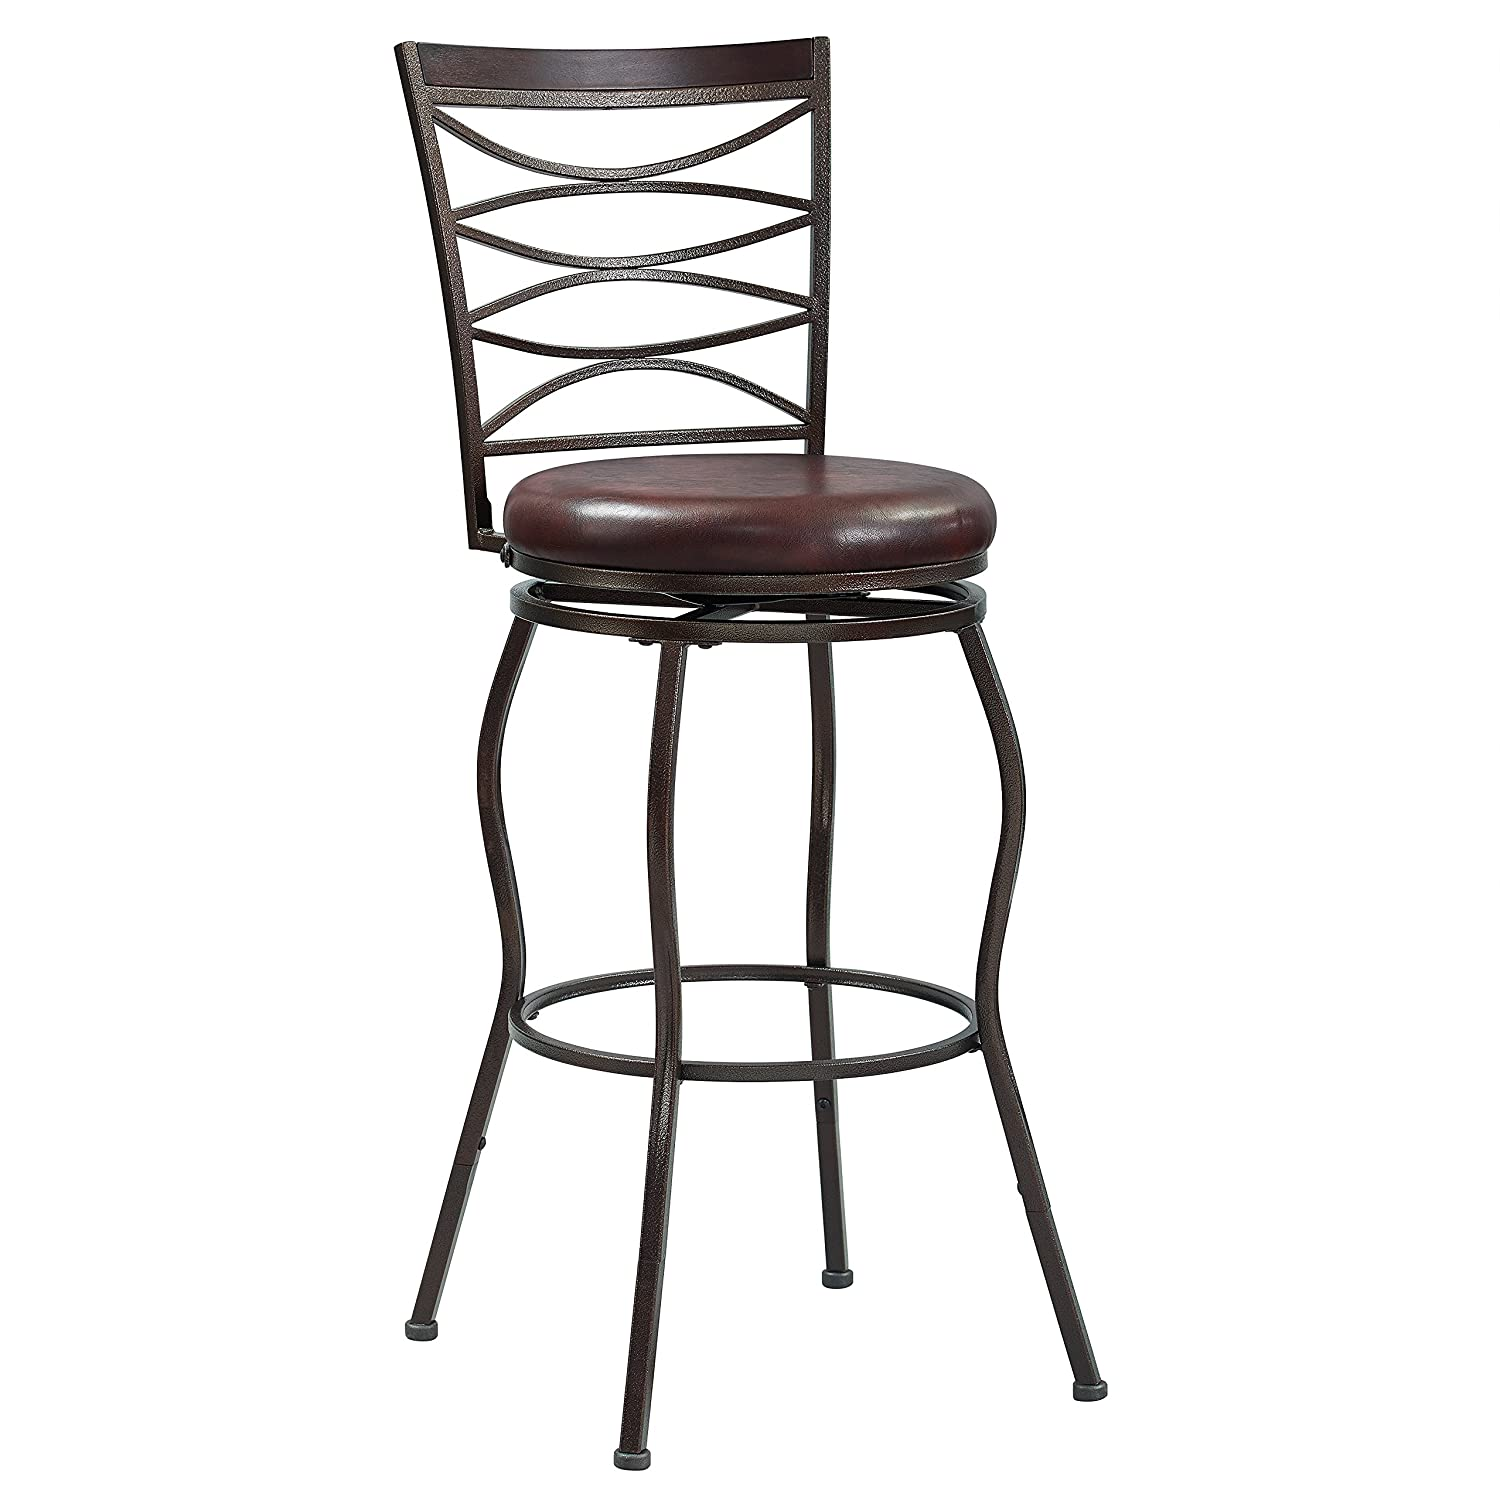 Pulaski 360 Swivel, Extending Legs Barstool, 24 to 30 H, Brown